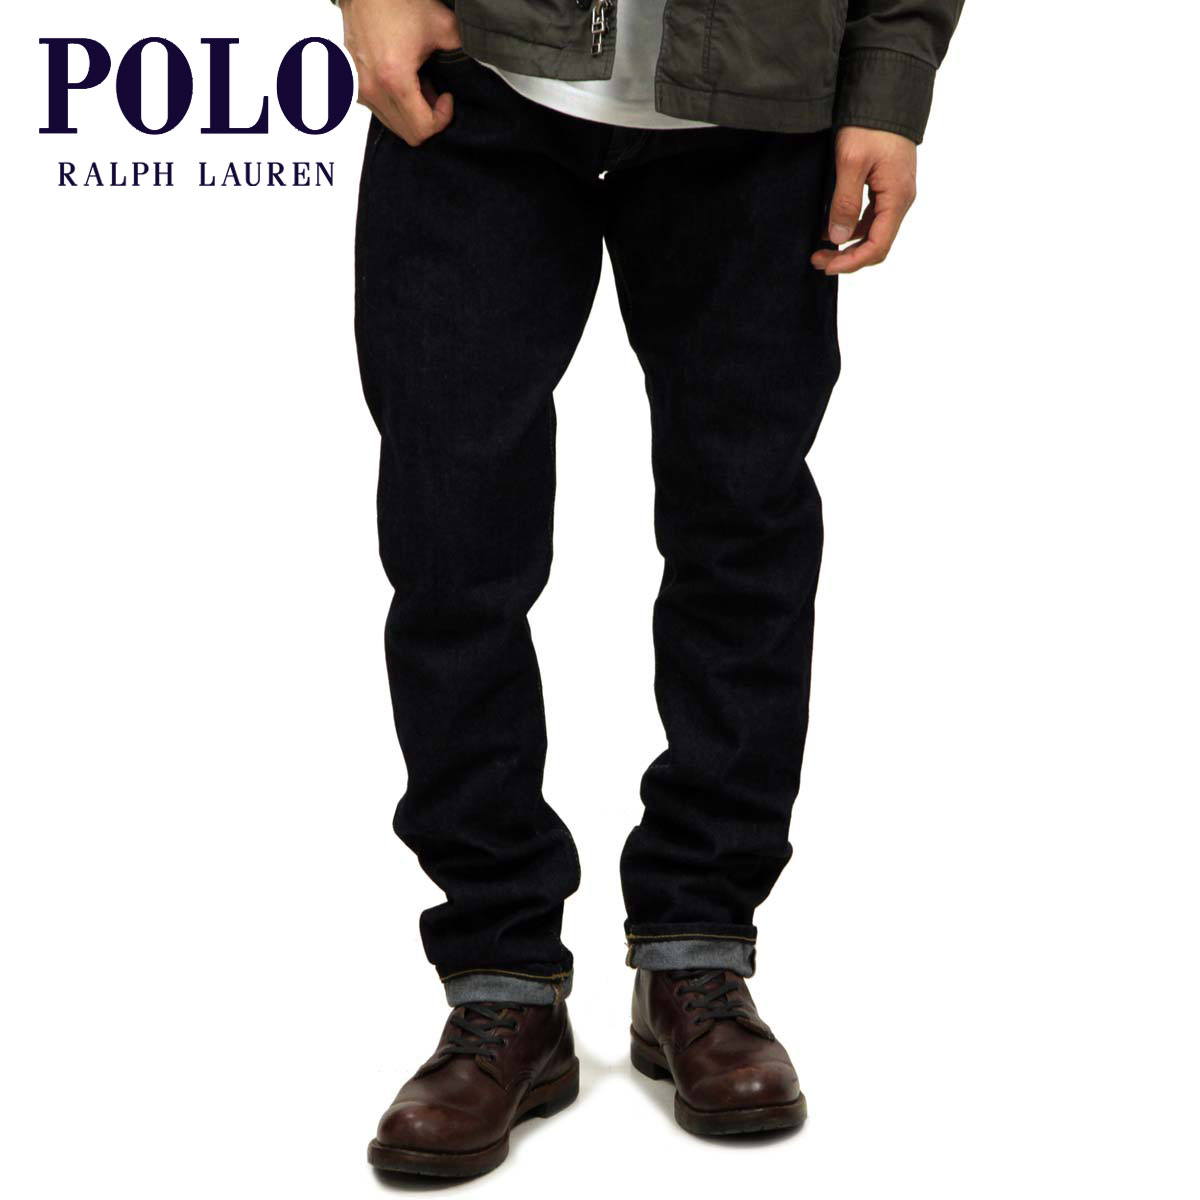 5d3495ce4a Polo Ralph Lauren jeans men's regular article POLO RALPH LAUREN jeans  SULLIVAN SLIM-FIT JEAN D00S20